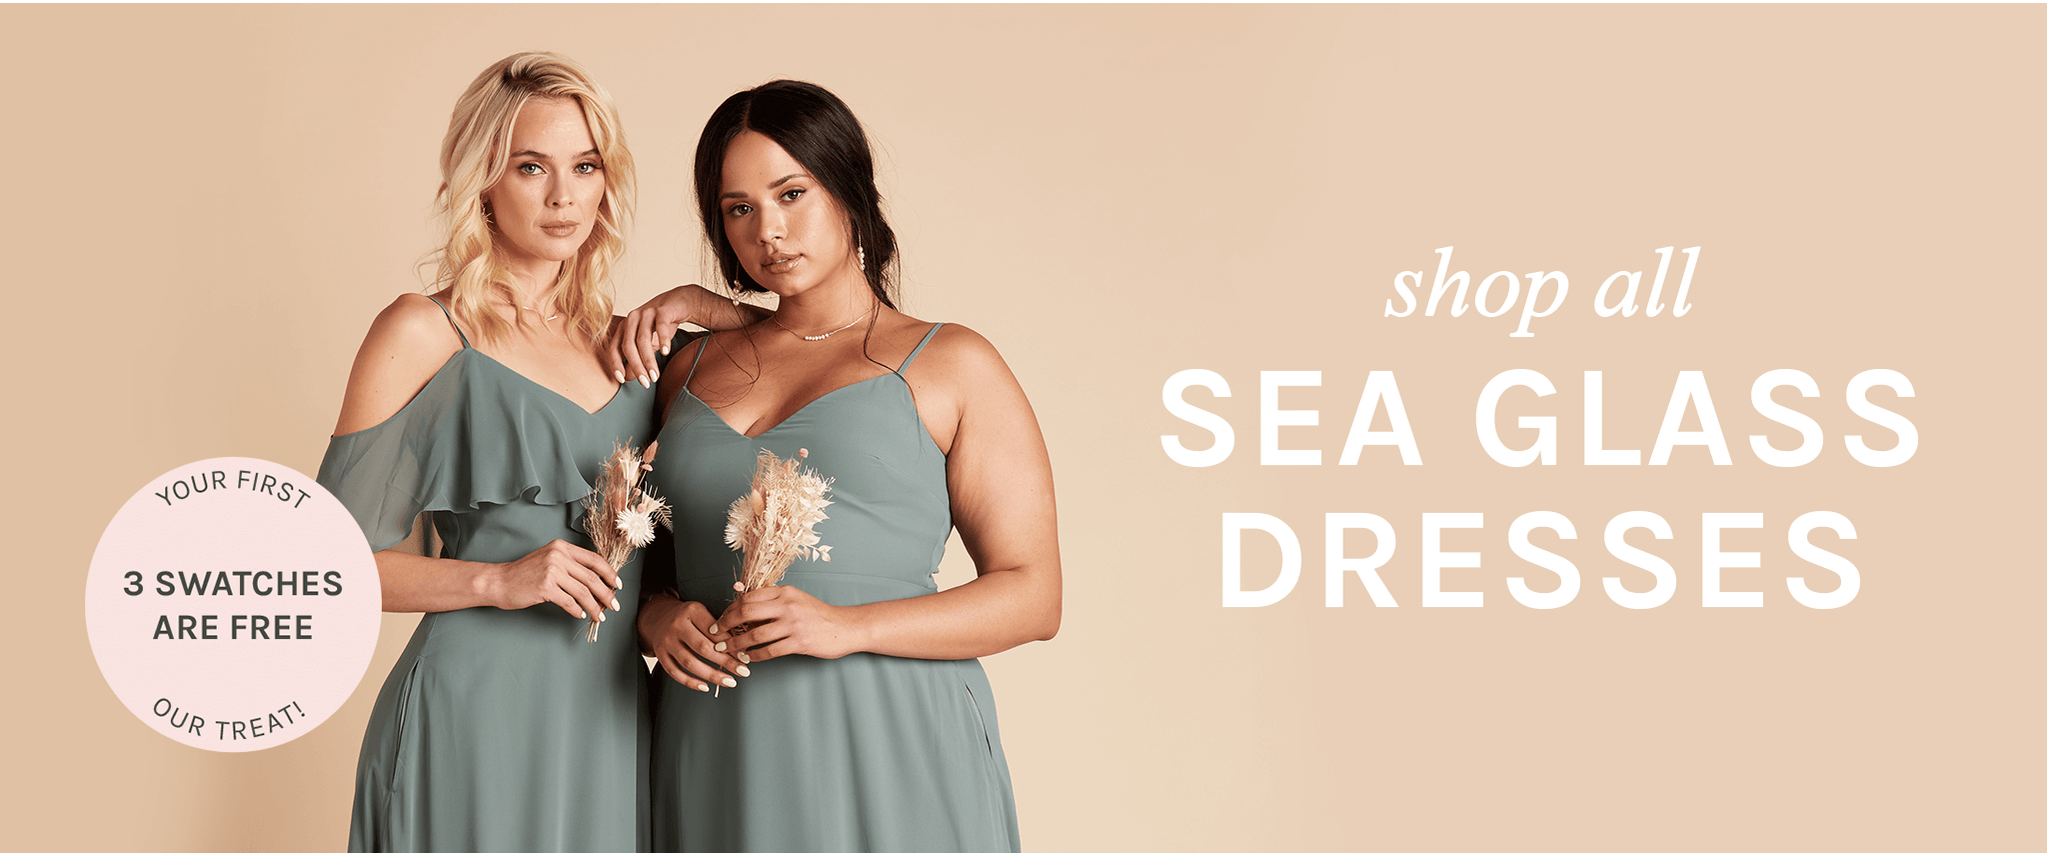 shop all Sea Glass dresses   your first 3 swatches are free, our treat  Birdy Grey